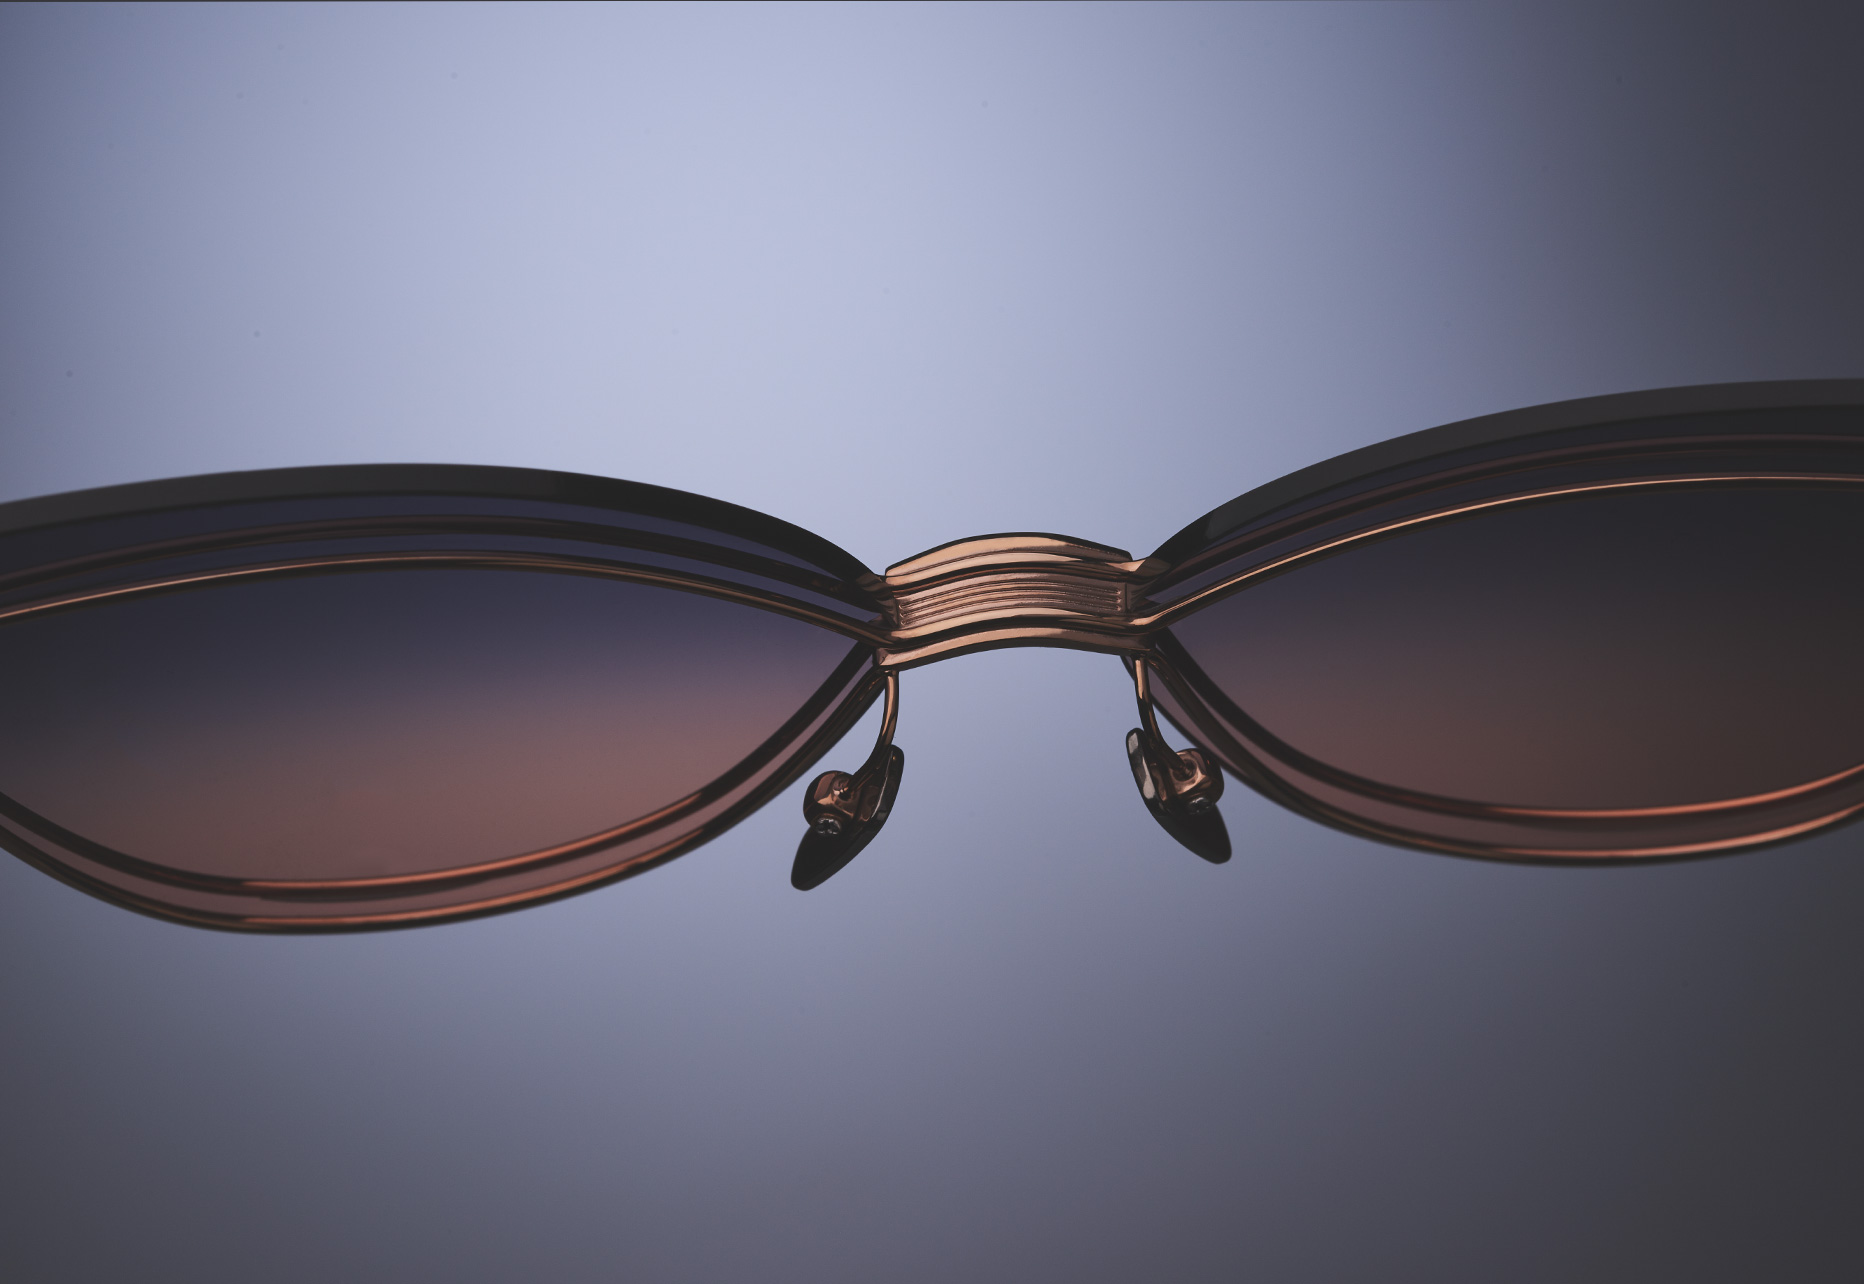 DITA NIGHTBIRD - ONE NO SCREWS, FRAME AND LENS ARE HELD WITH TENSION DESIGN